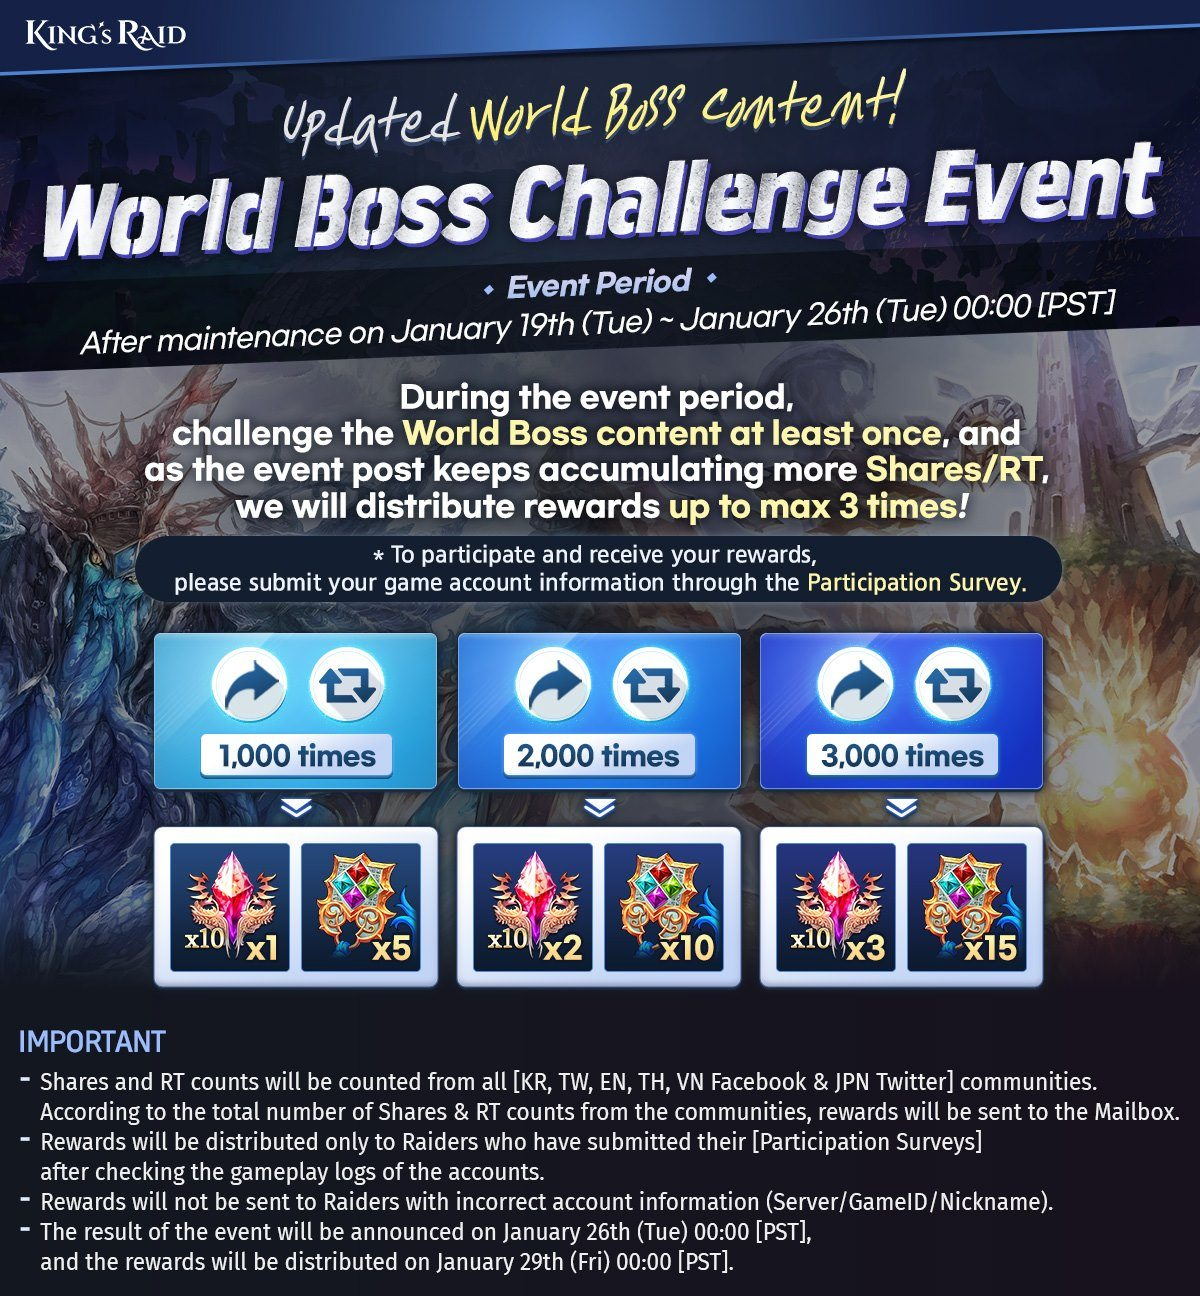 How to Participate in the King's Raid World Boss Challenge Event